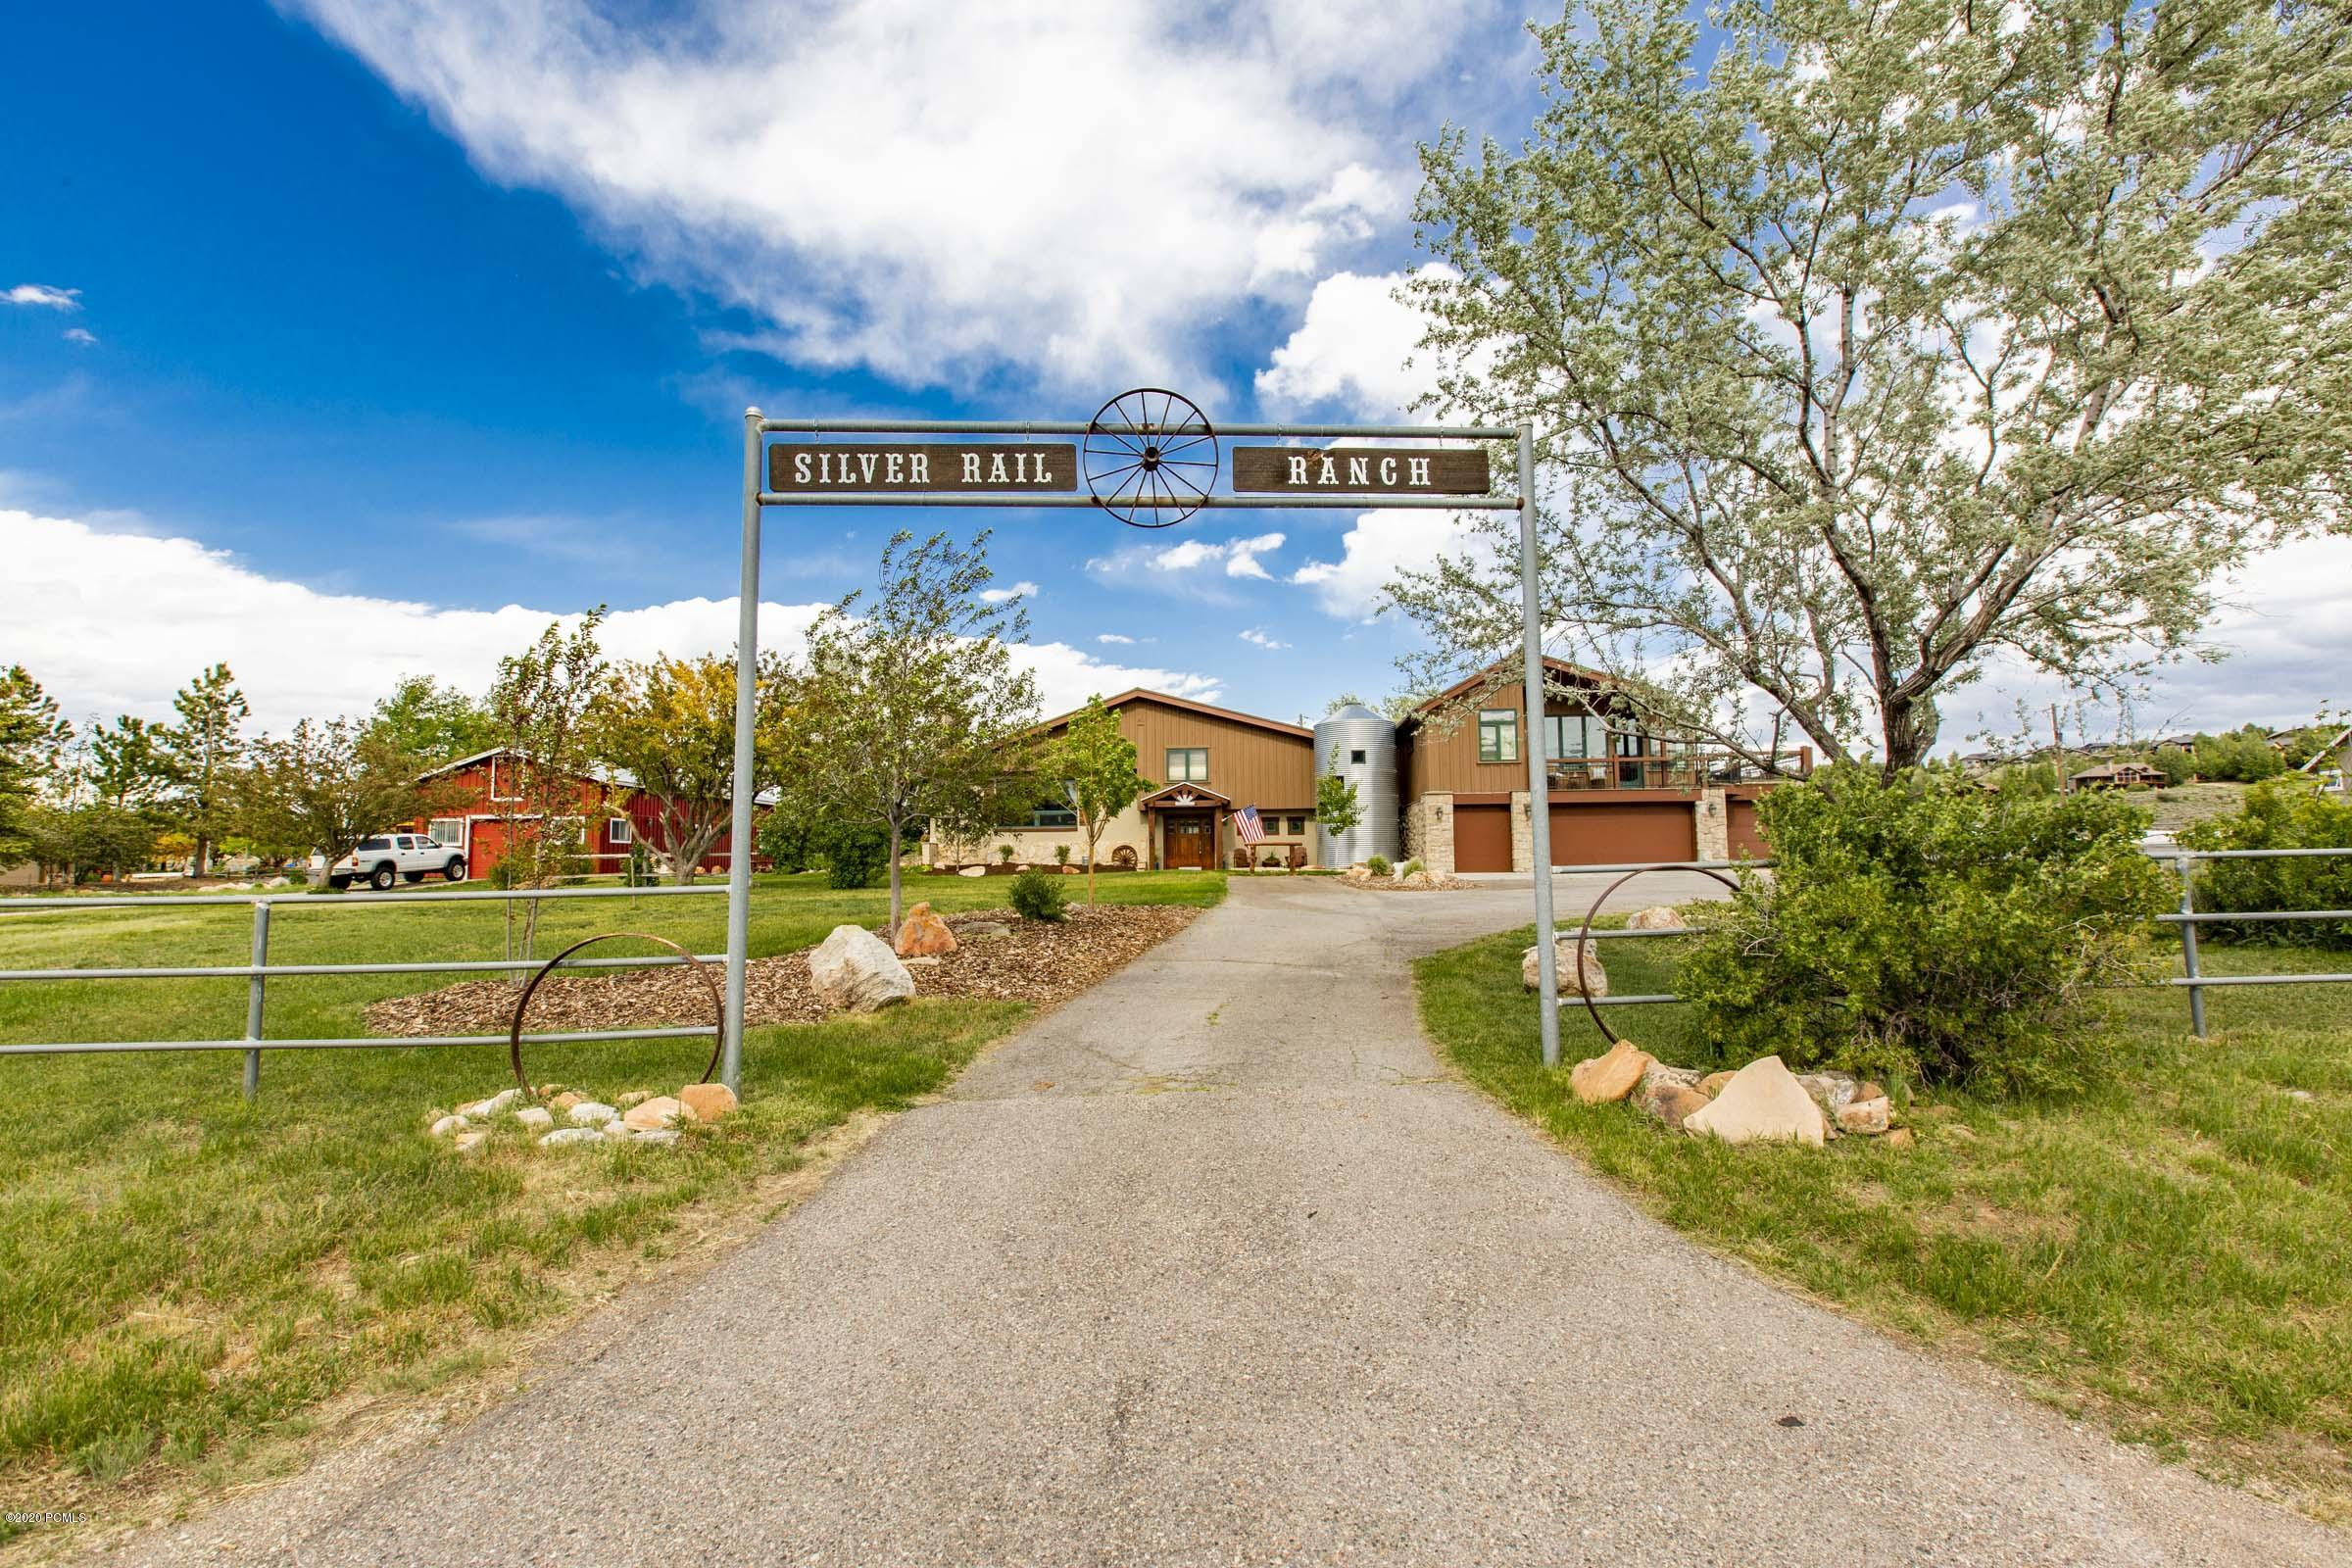 5804 Old Ranch Road, Park City, Utah 84098, 4 Bedrooms Bedrooms, ,3 BathroomsBathrooms,Single Family,For Sale,Old Ranch,20190109112430415765000000